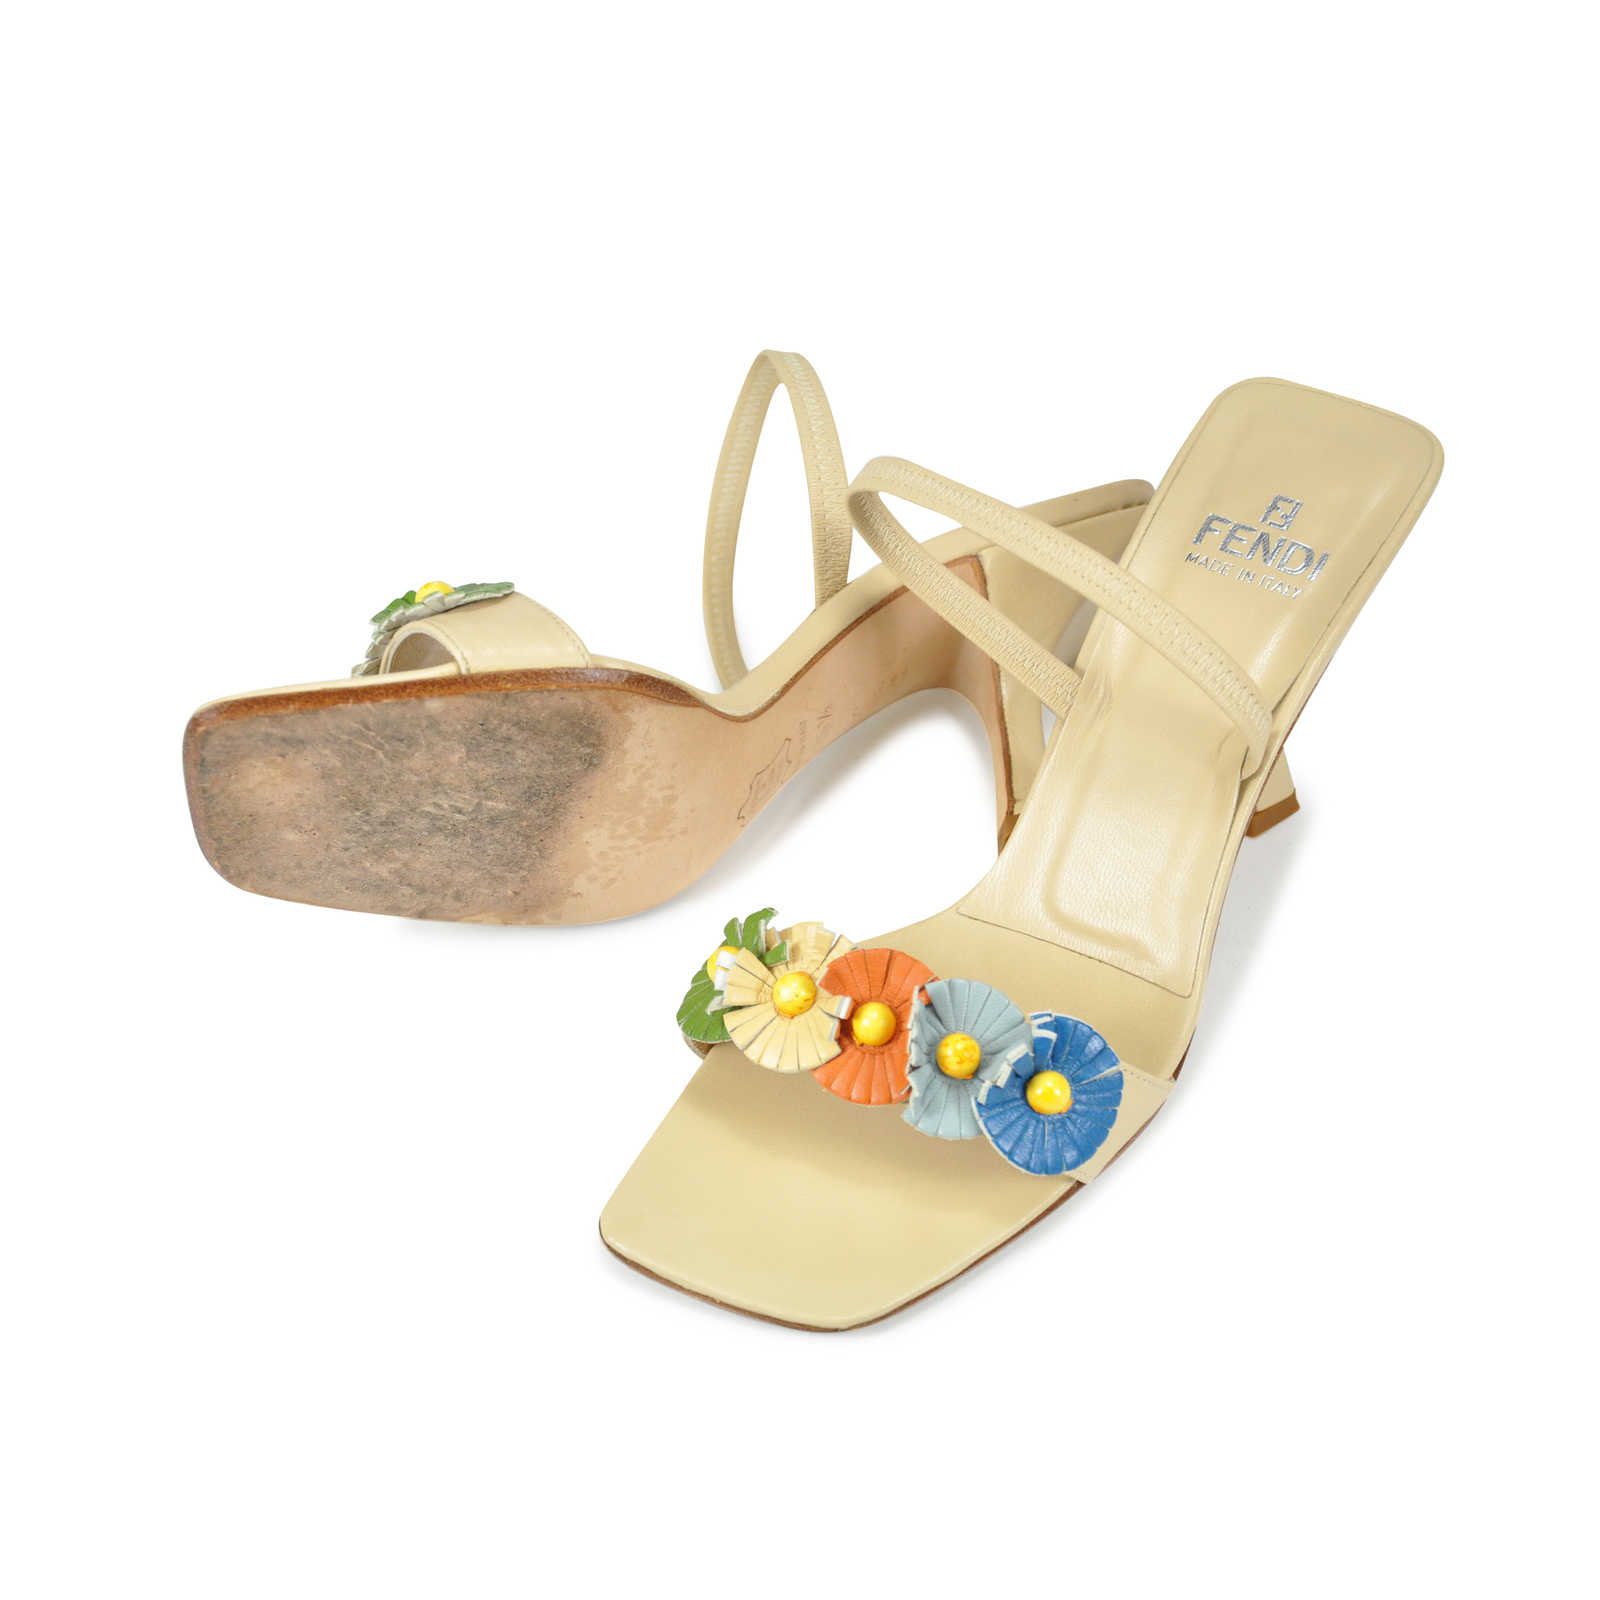 83e5f1b17eec ... Authentic Second Hand Fendi Floral Kitten Heels (PSS-047-00038) -  Thumbnail ...